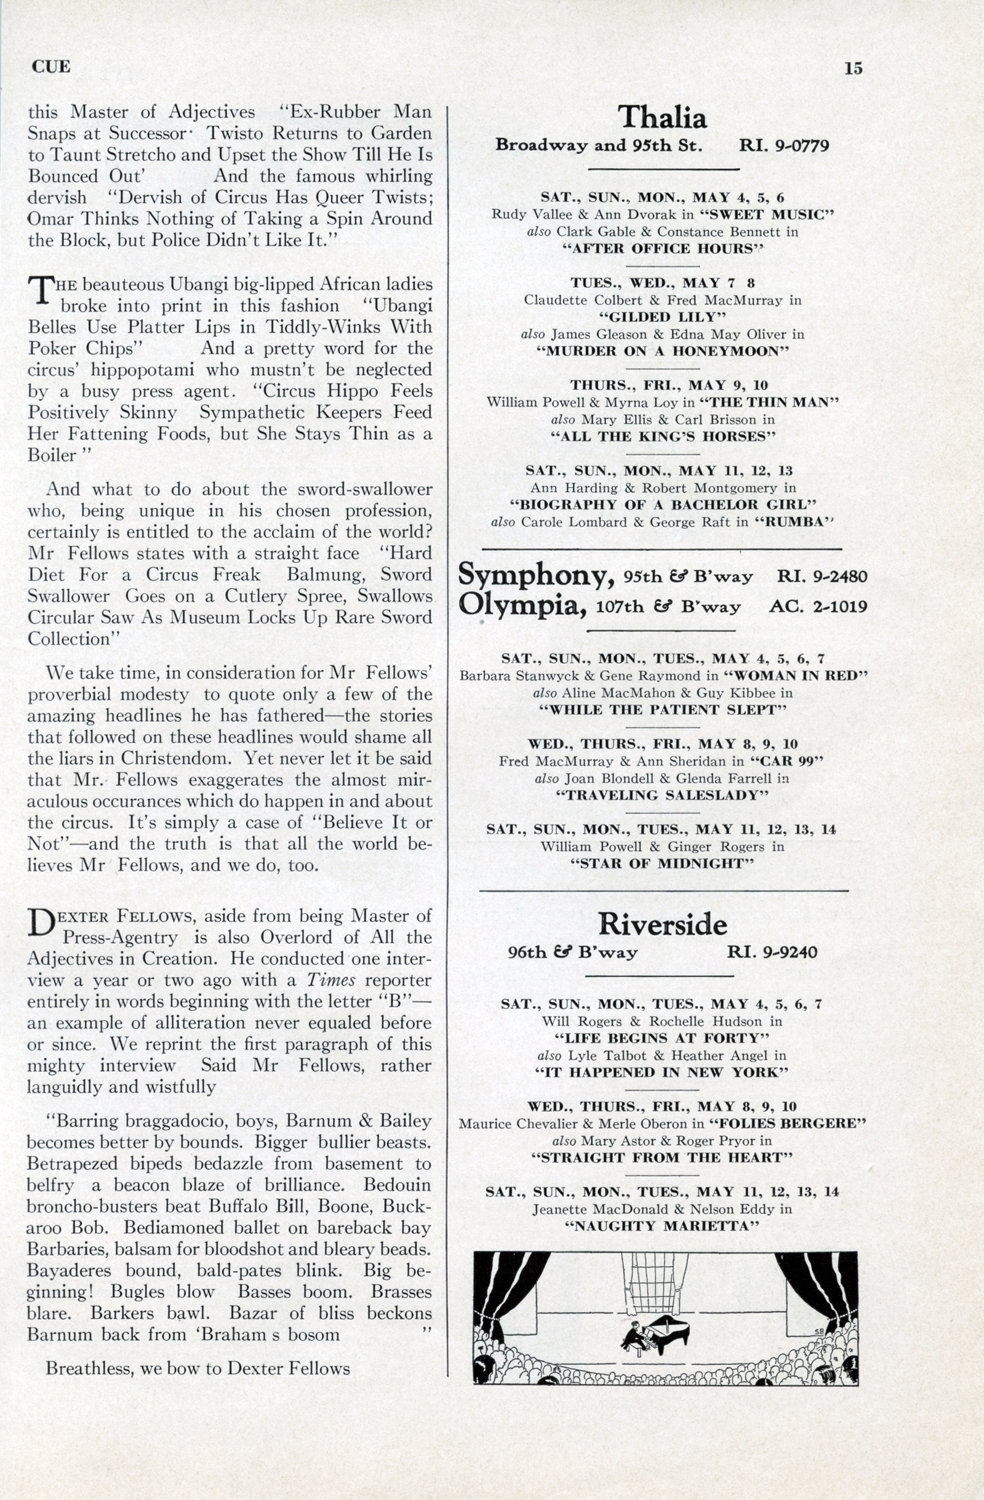 May 4,1935, Pg. 15 INSIDE  CUE : Movie Listings